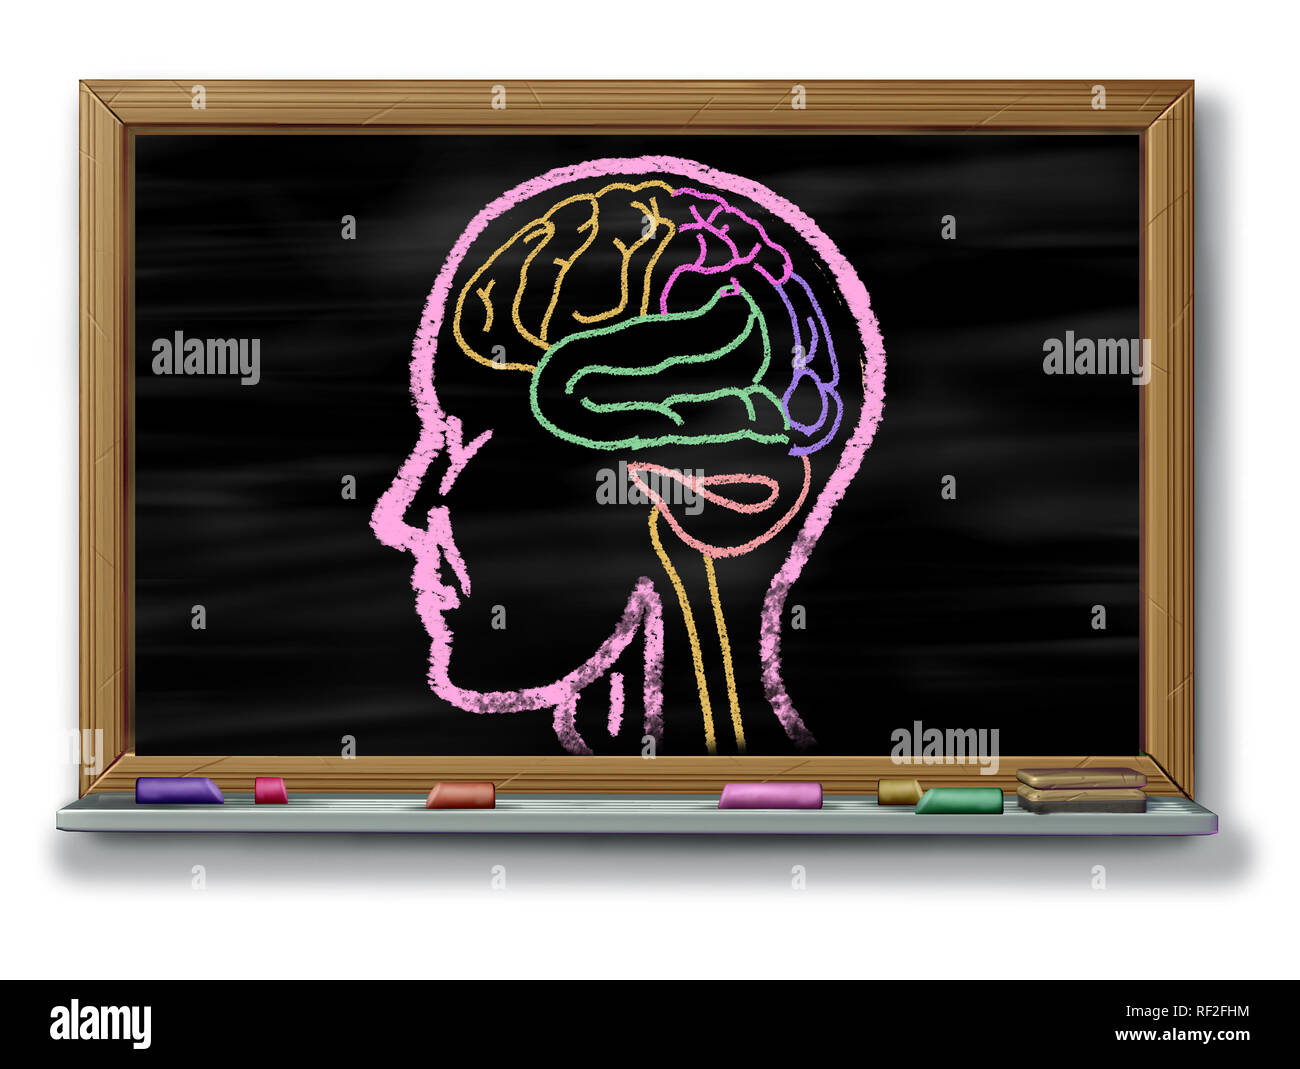 Concept of autism adapted education or autistic development disorder as an icon of a communication and social behavior psychology as a chalk drawing. - Stock Image